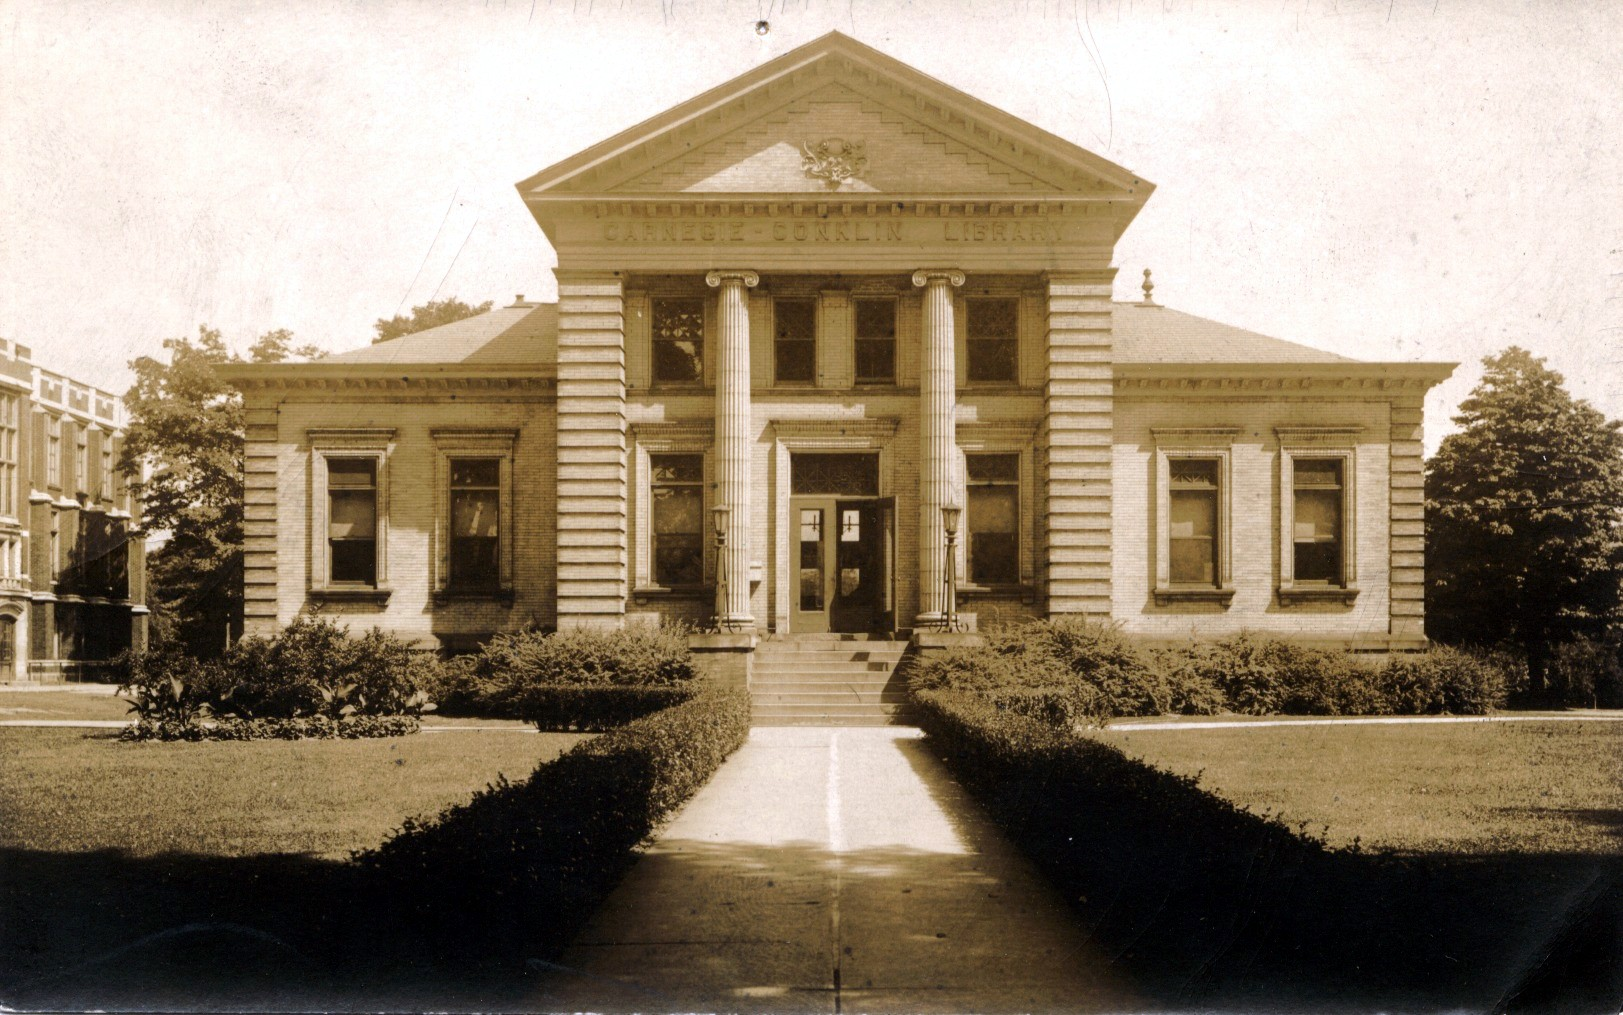 Old Ashtabula Library